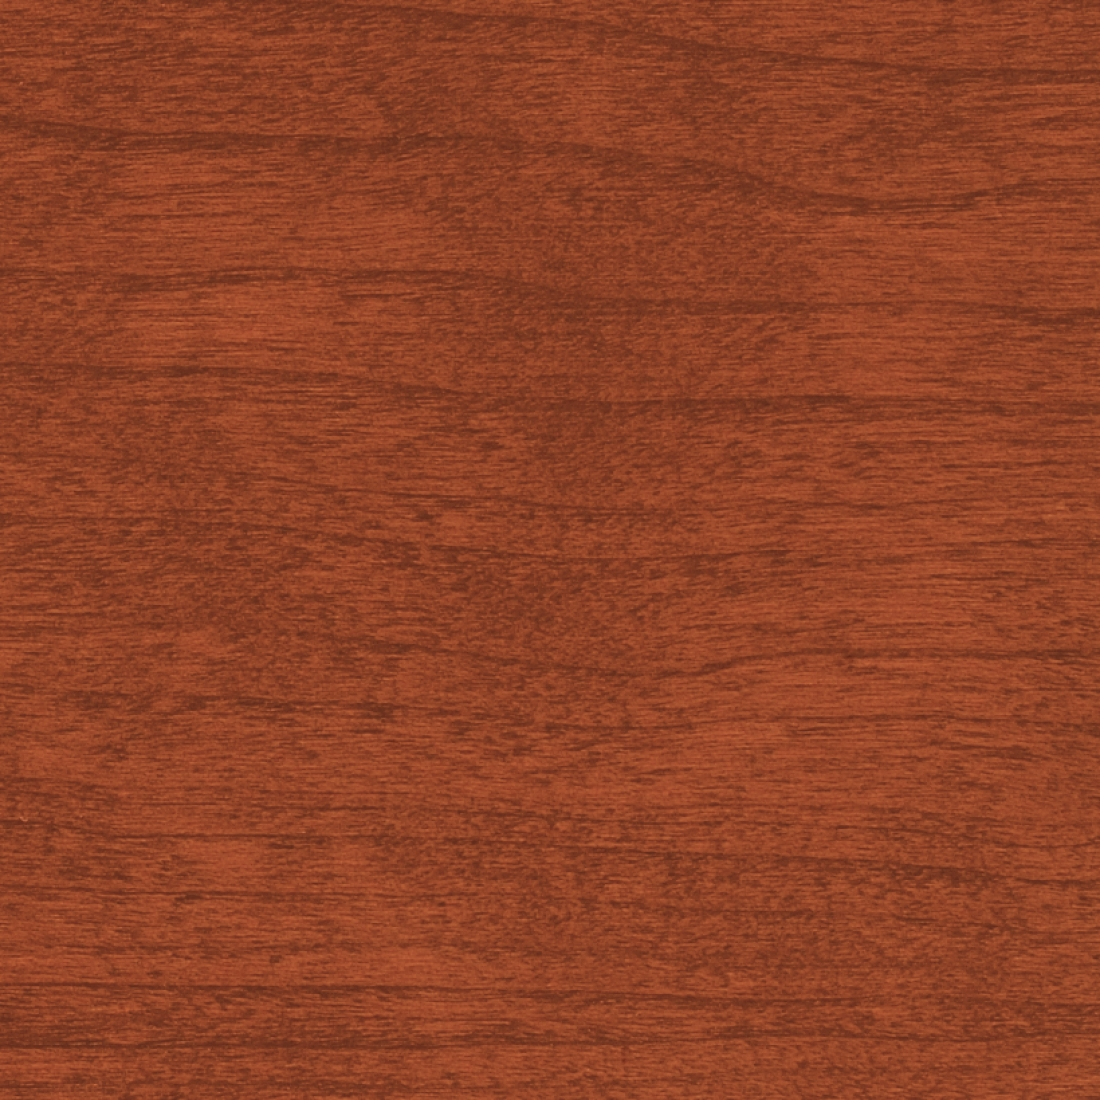 Wood Veneer RCW Red Cherry